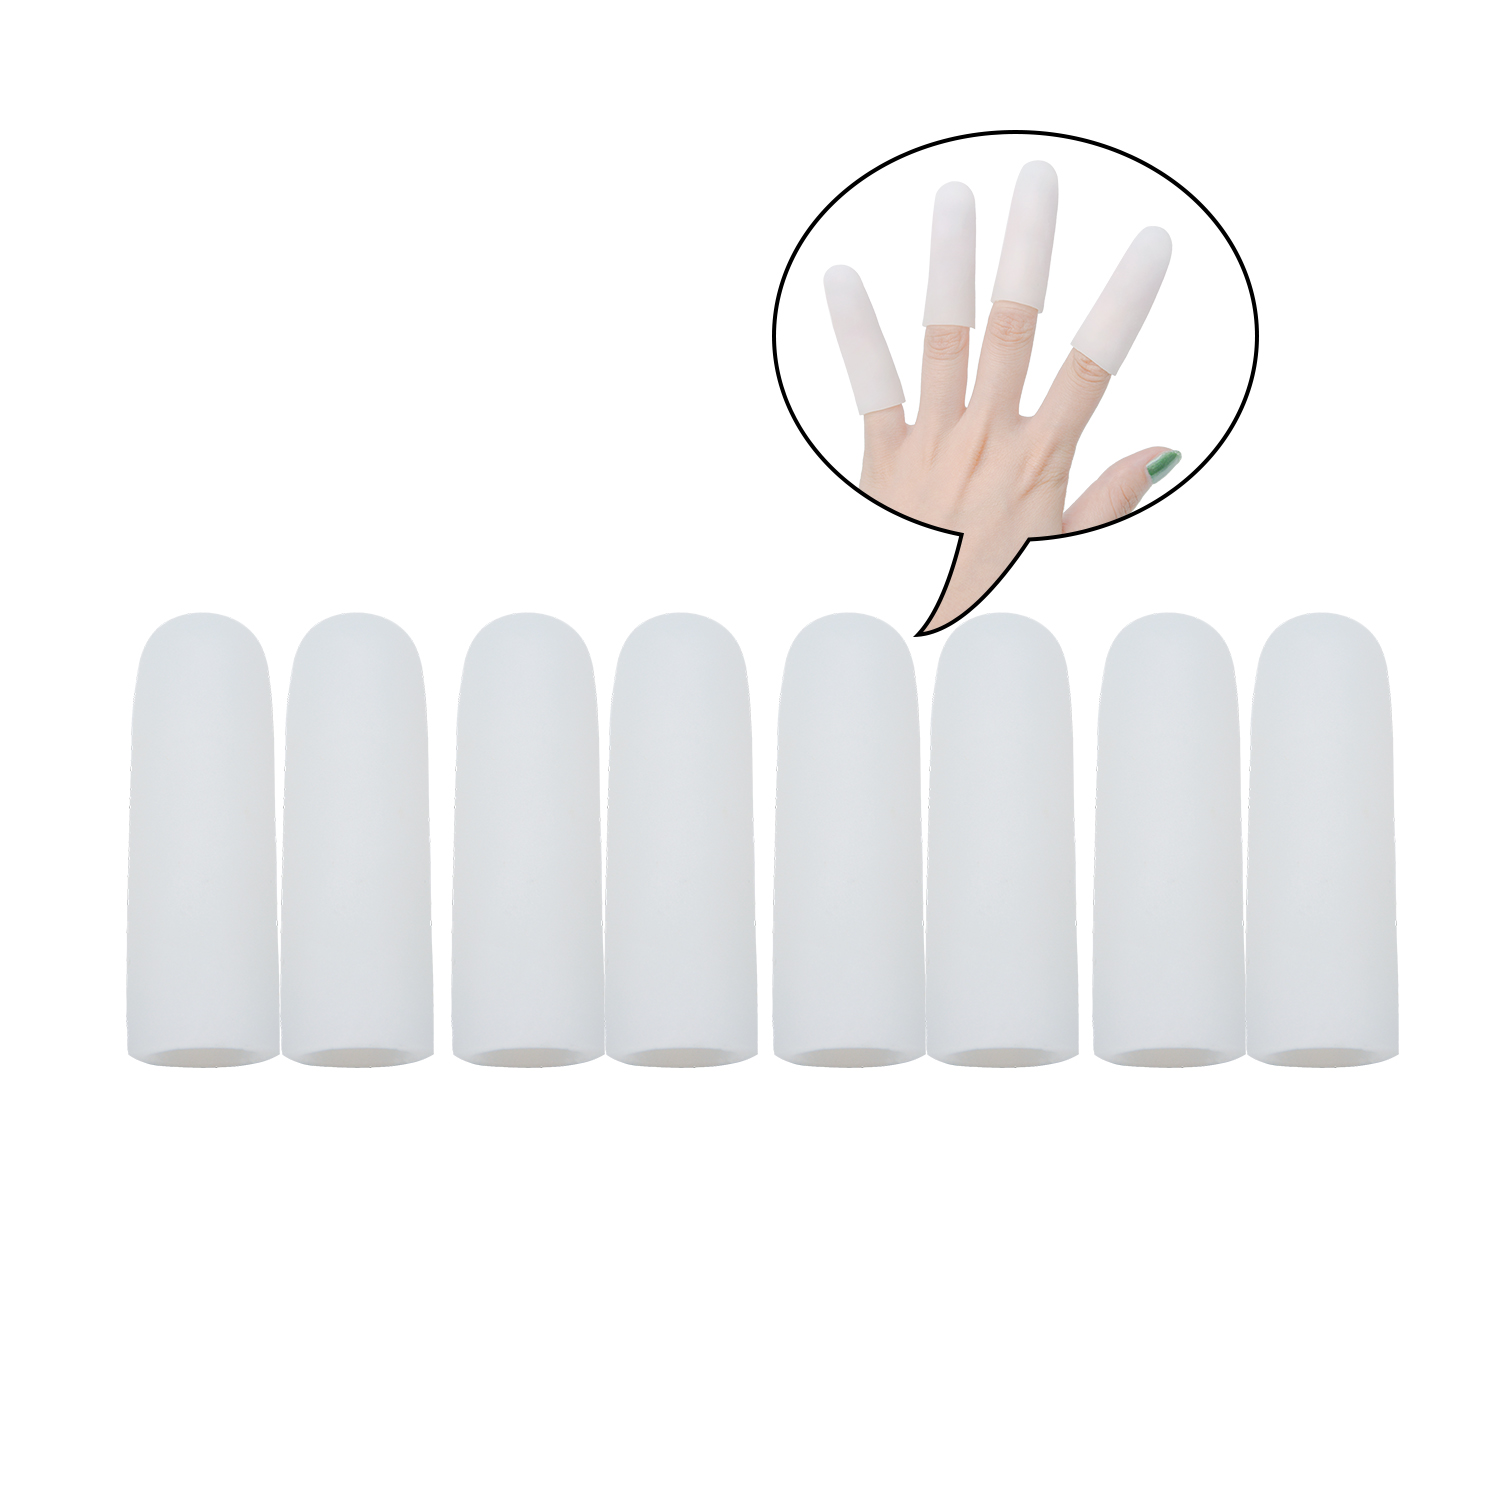 2Pcs White Fingers Protector Silicone Gel Tube Little Toe Corn Blister Protect Sleeve Cover Toe Separators Hand Foot Care Tool